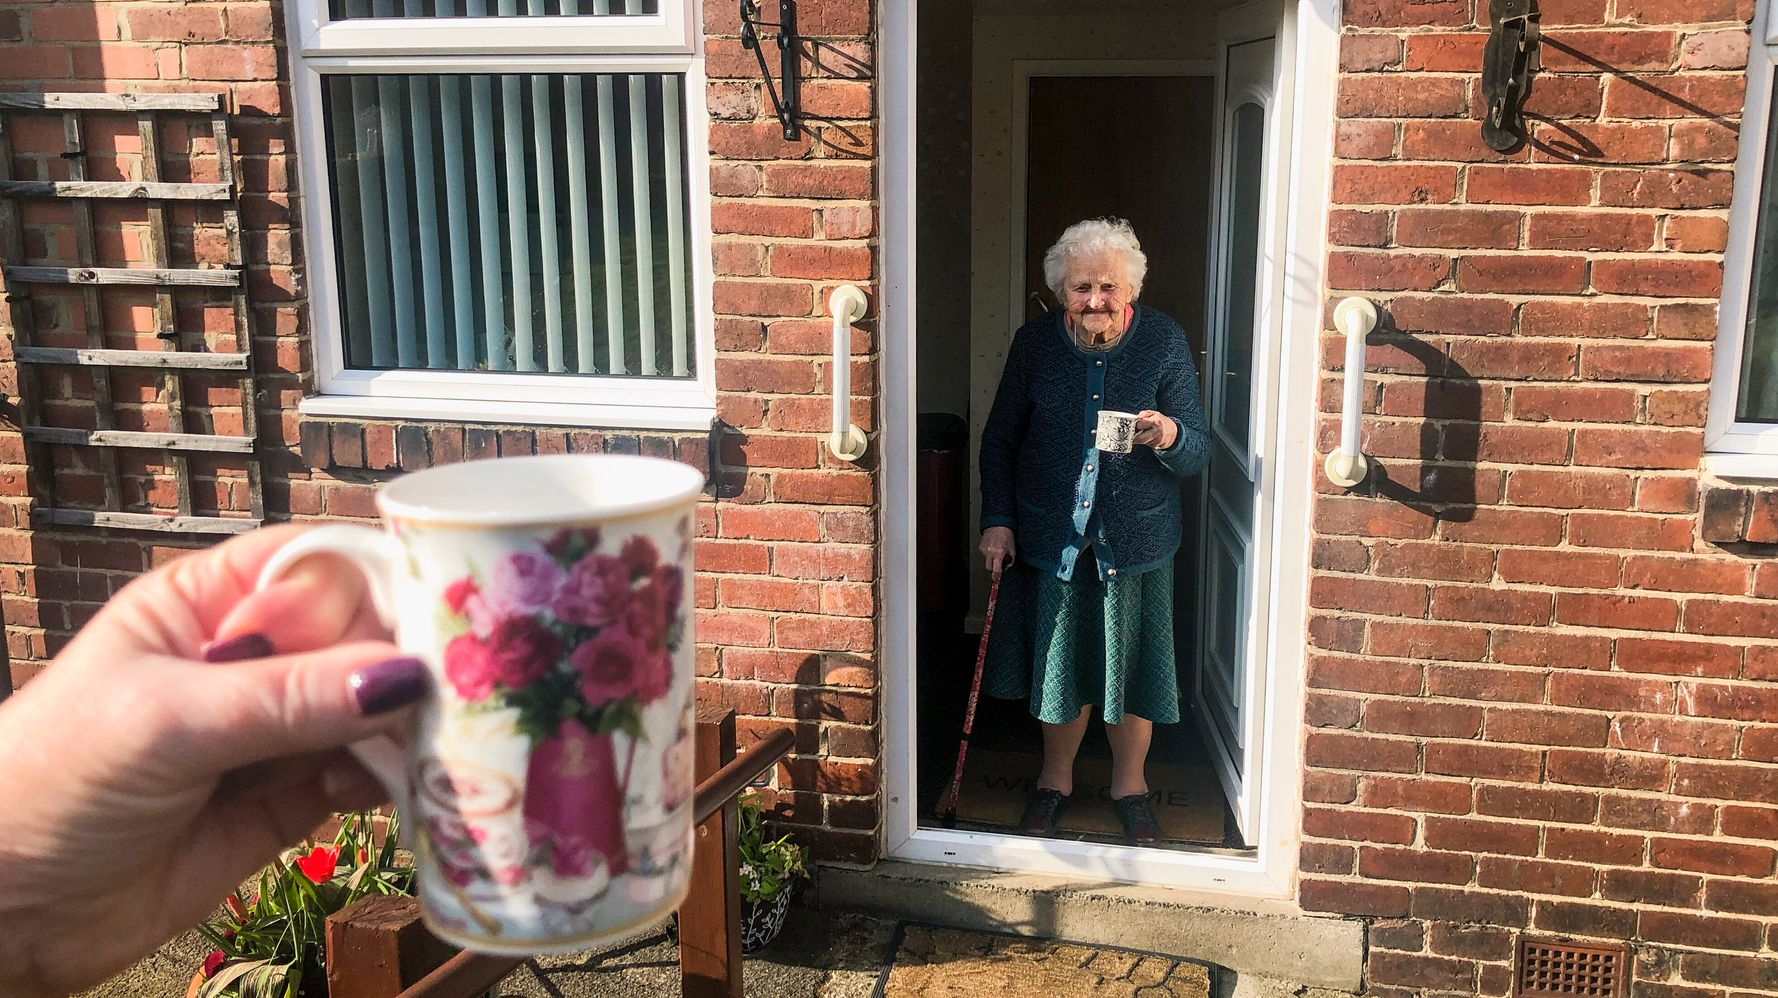 Is It Okay To Visit Loved Ones In The Garden Or Front Drive?